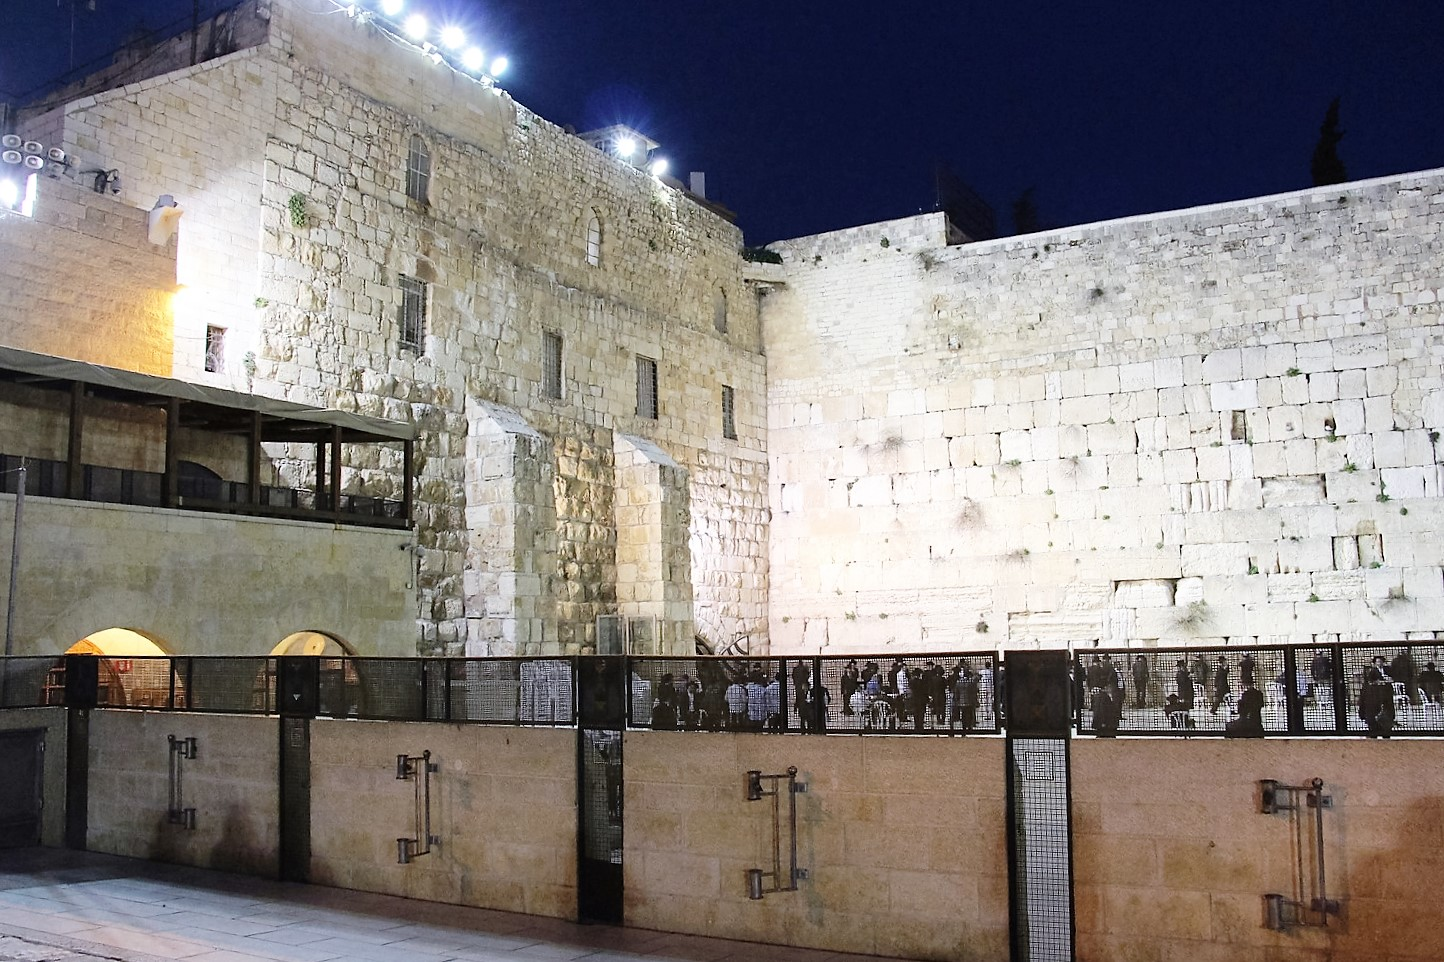 Visiting the Western Wall in Jerusalem